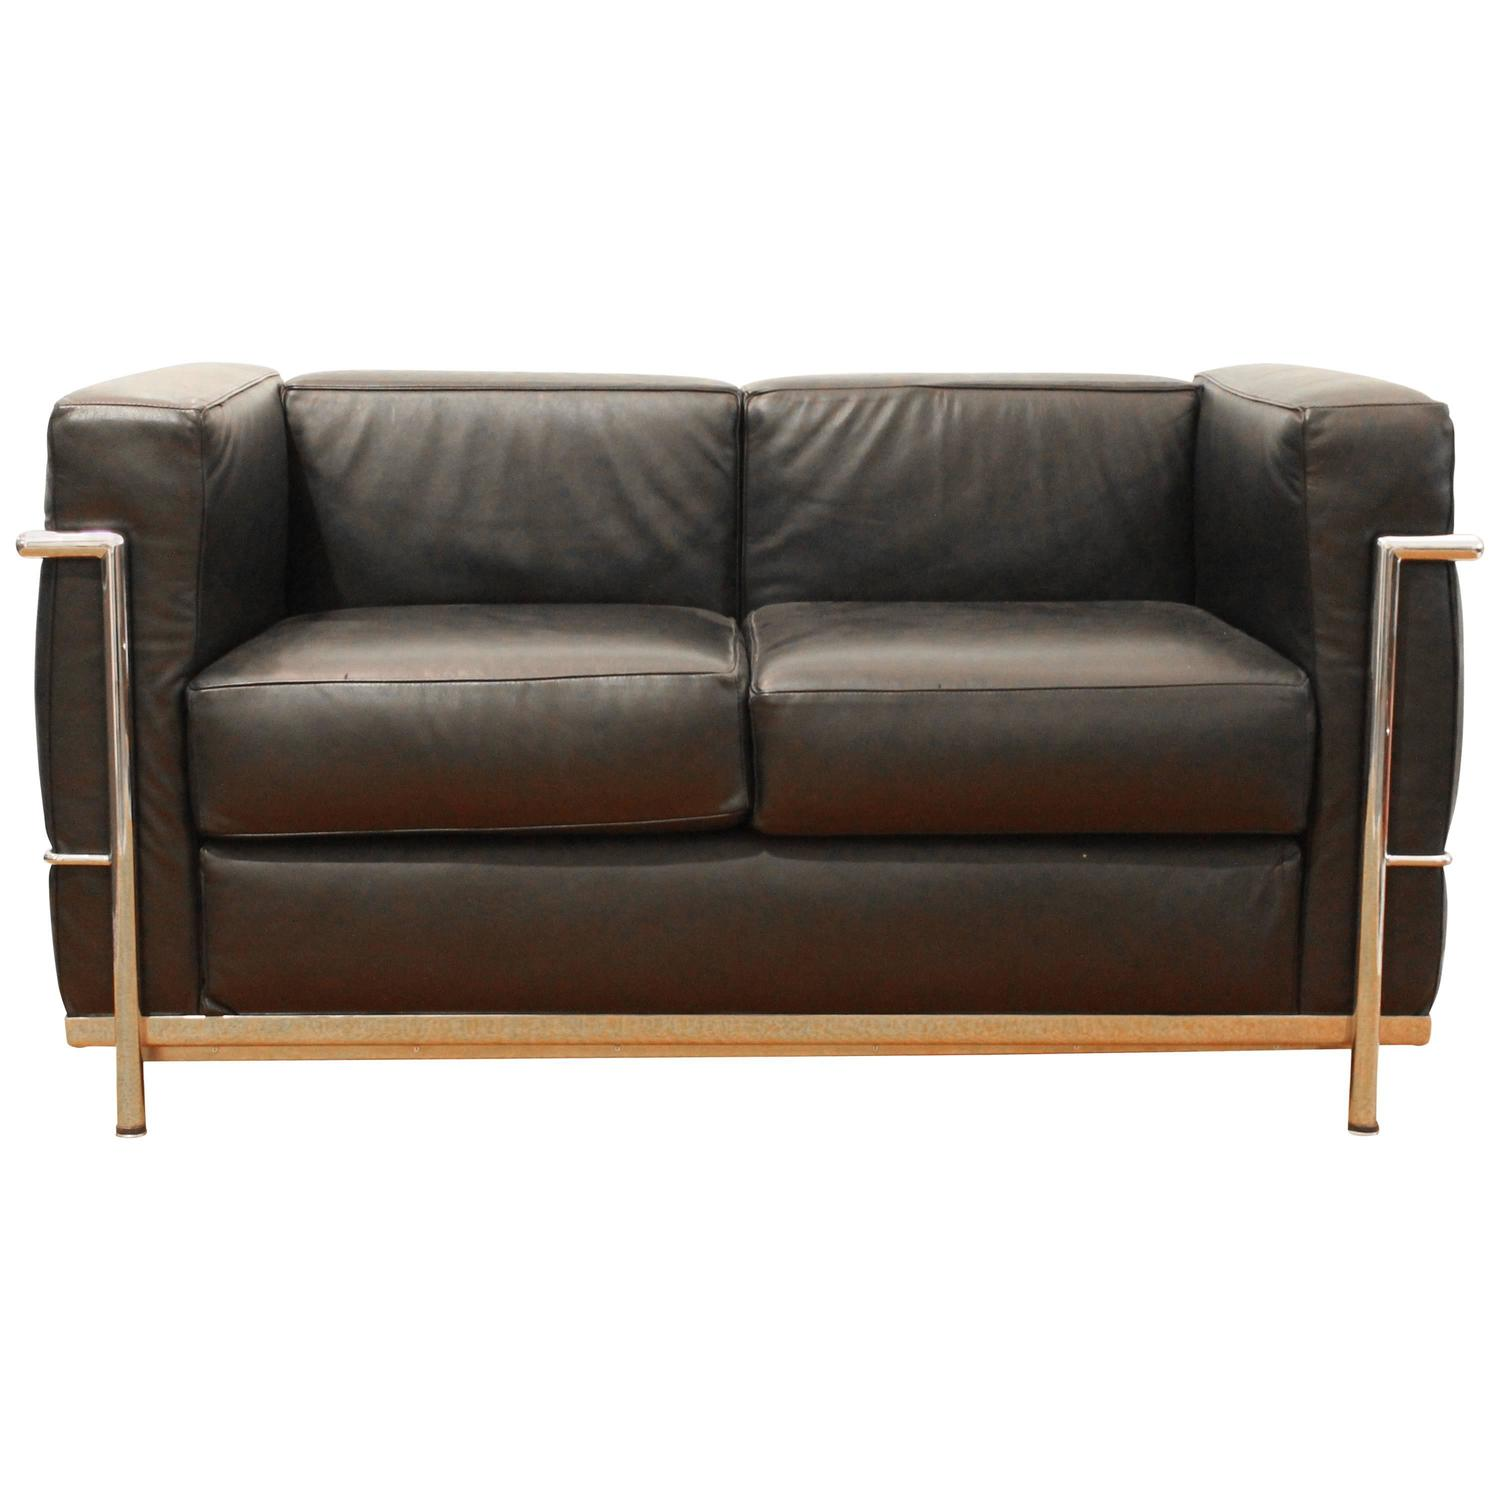 Lc2 sofa by le corbusier for alivar for sale at 1stdibs for Divan le corbusier